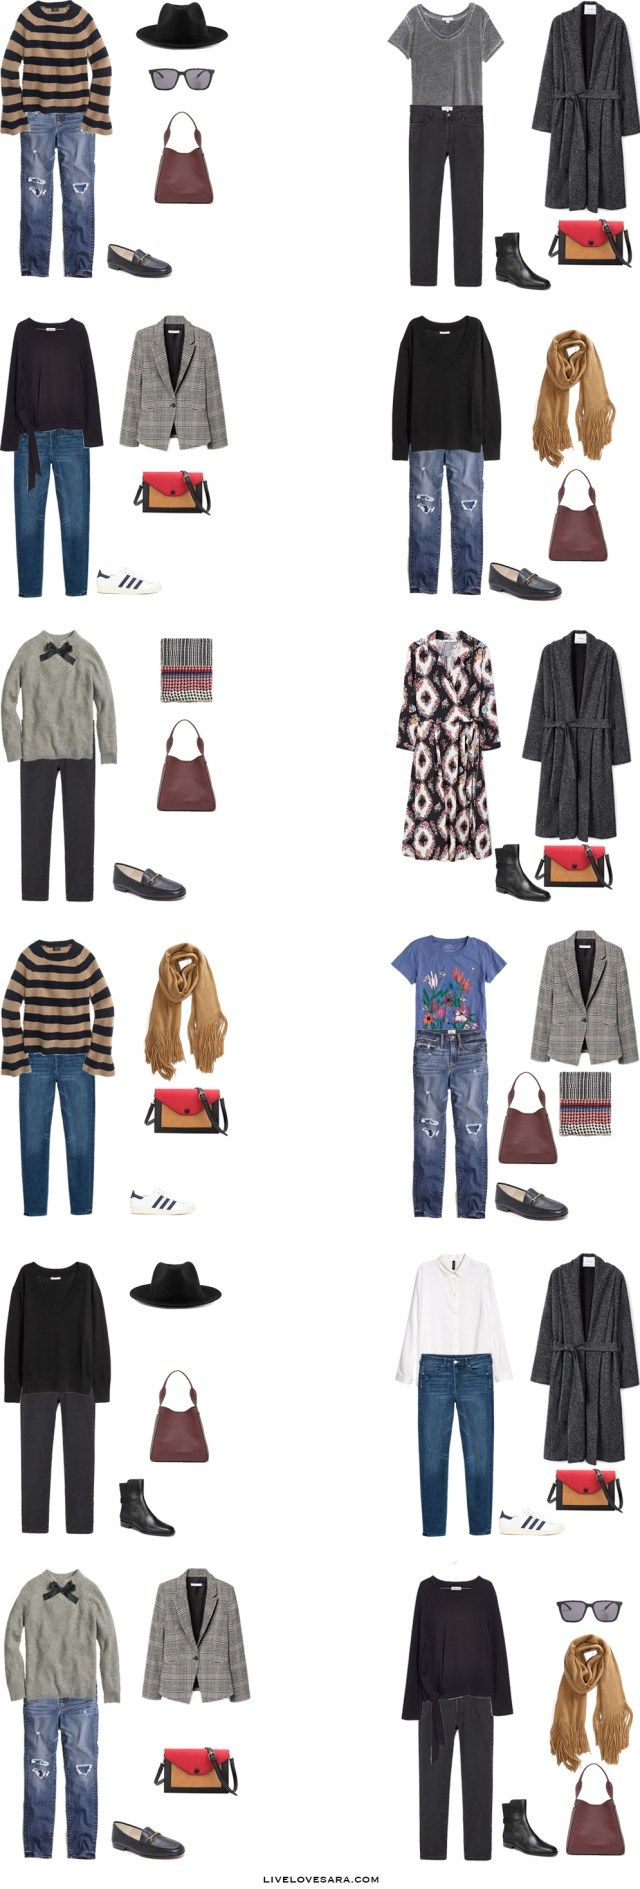 Packing Light | Packing List | Portugal Packing List | Lisbon Packing List | Europe Packing List | Winter Packing List | What to Pack | Capsule Wardrobe | Capsule | What to Pack | Travel Wardrobe |